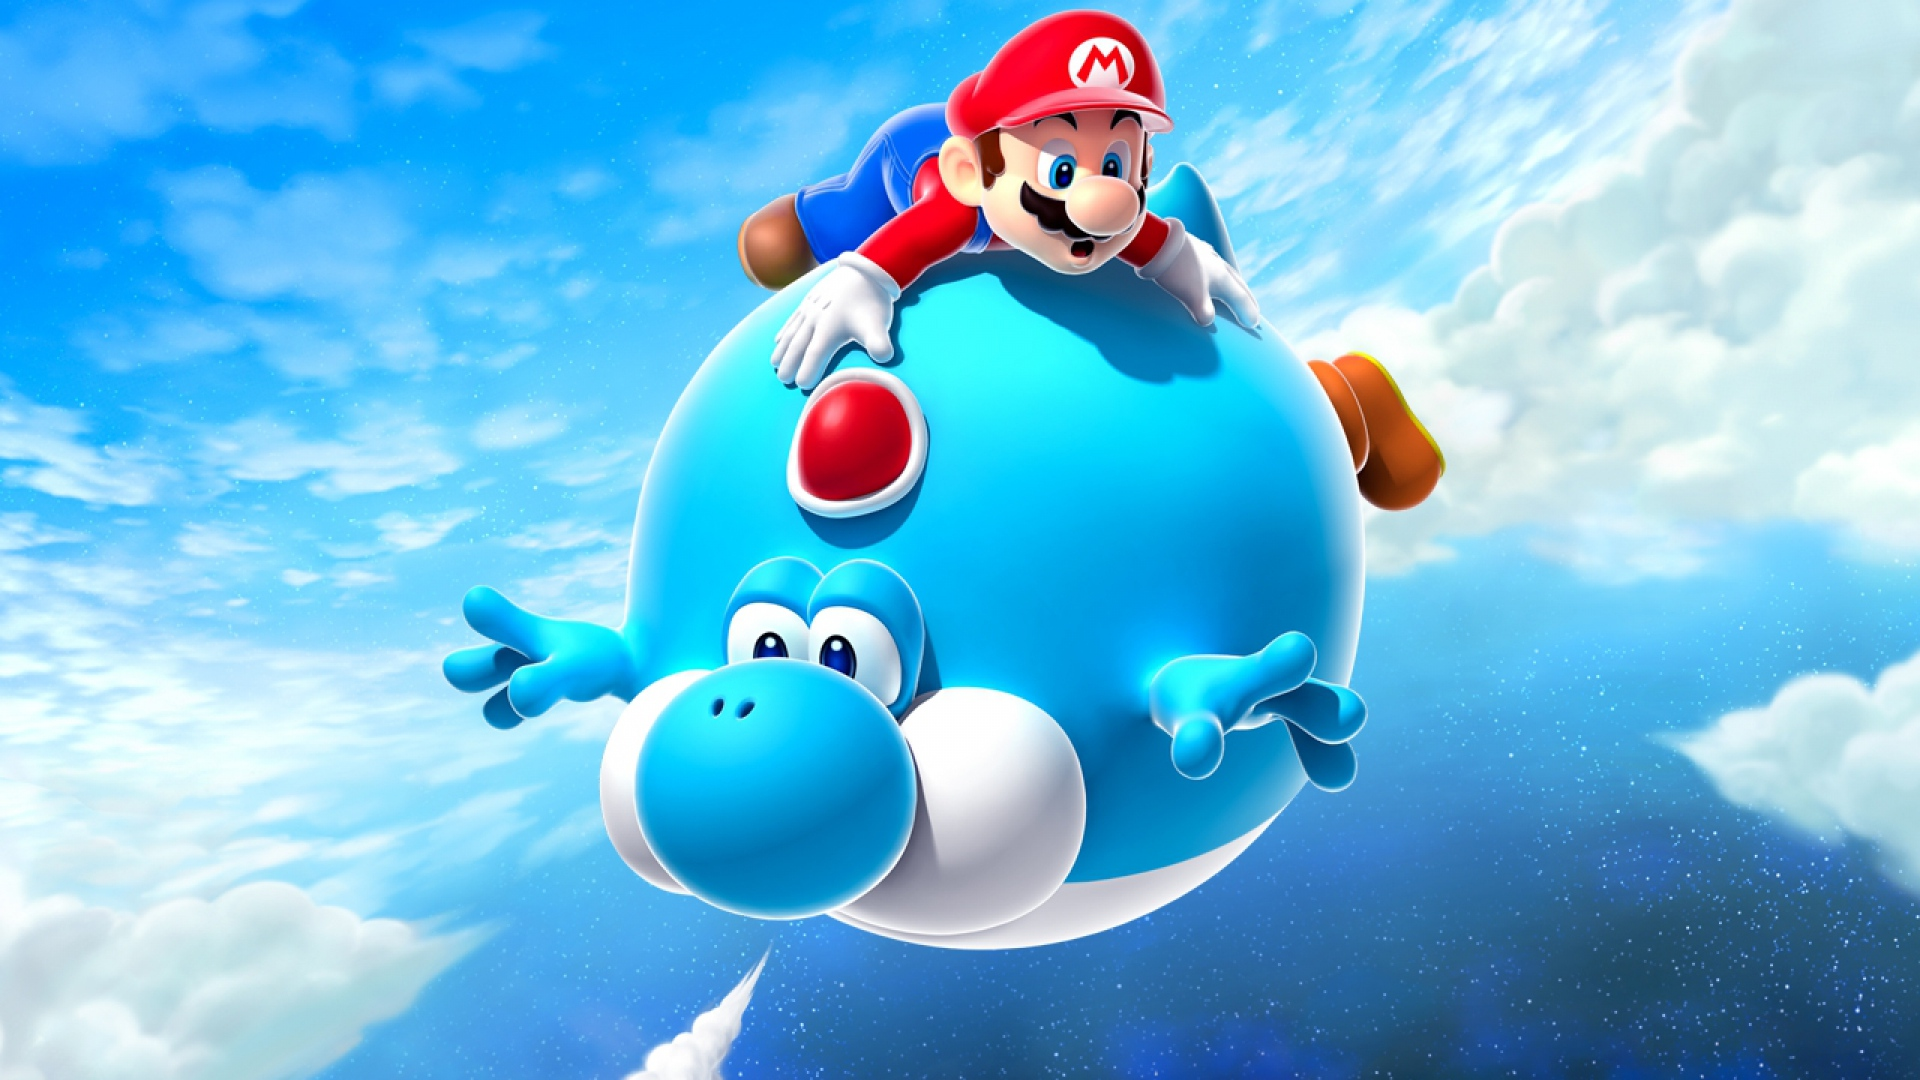 Super Hd Wallpapers 1920x1080 Mario Wallpaper Free Download